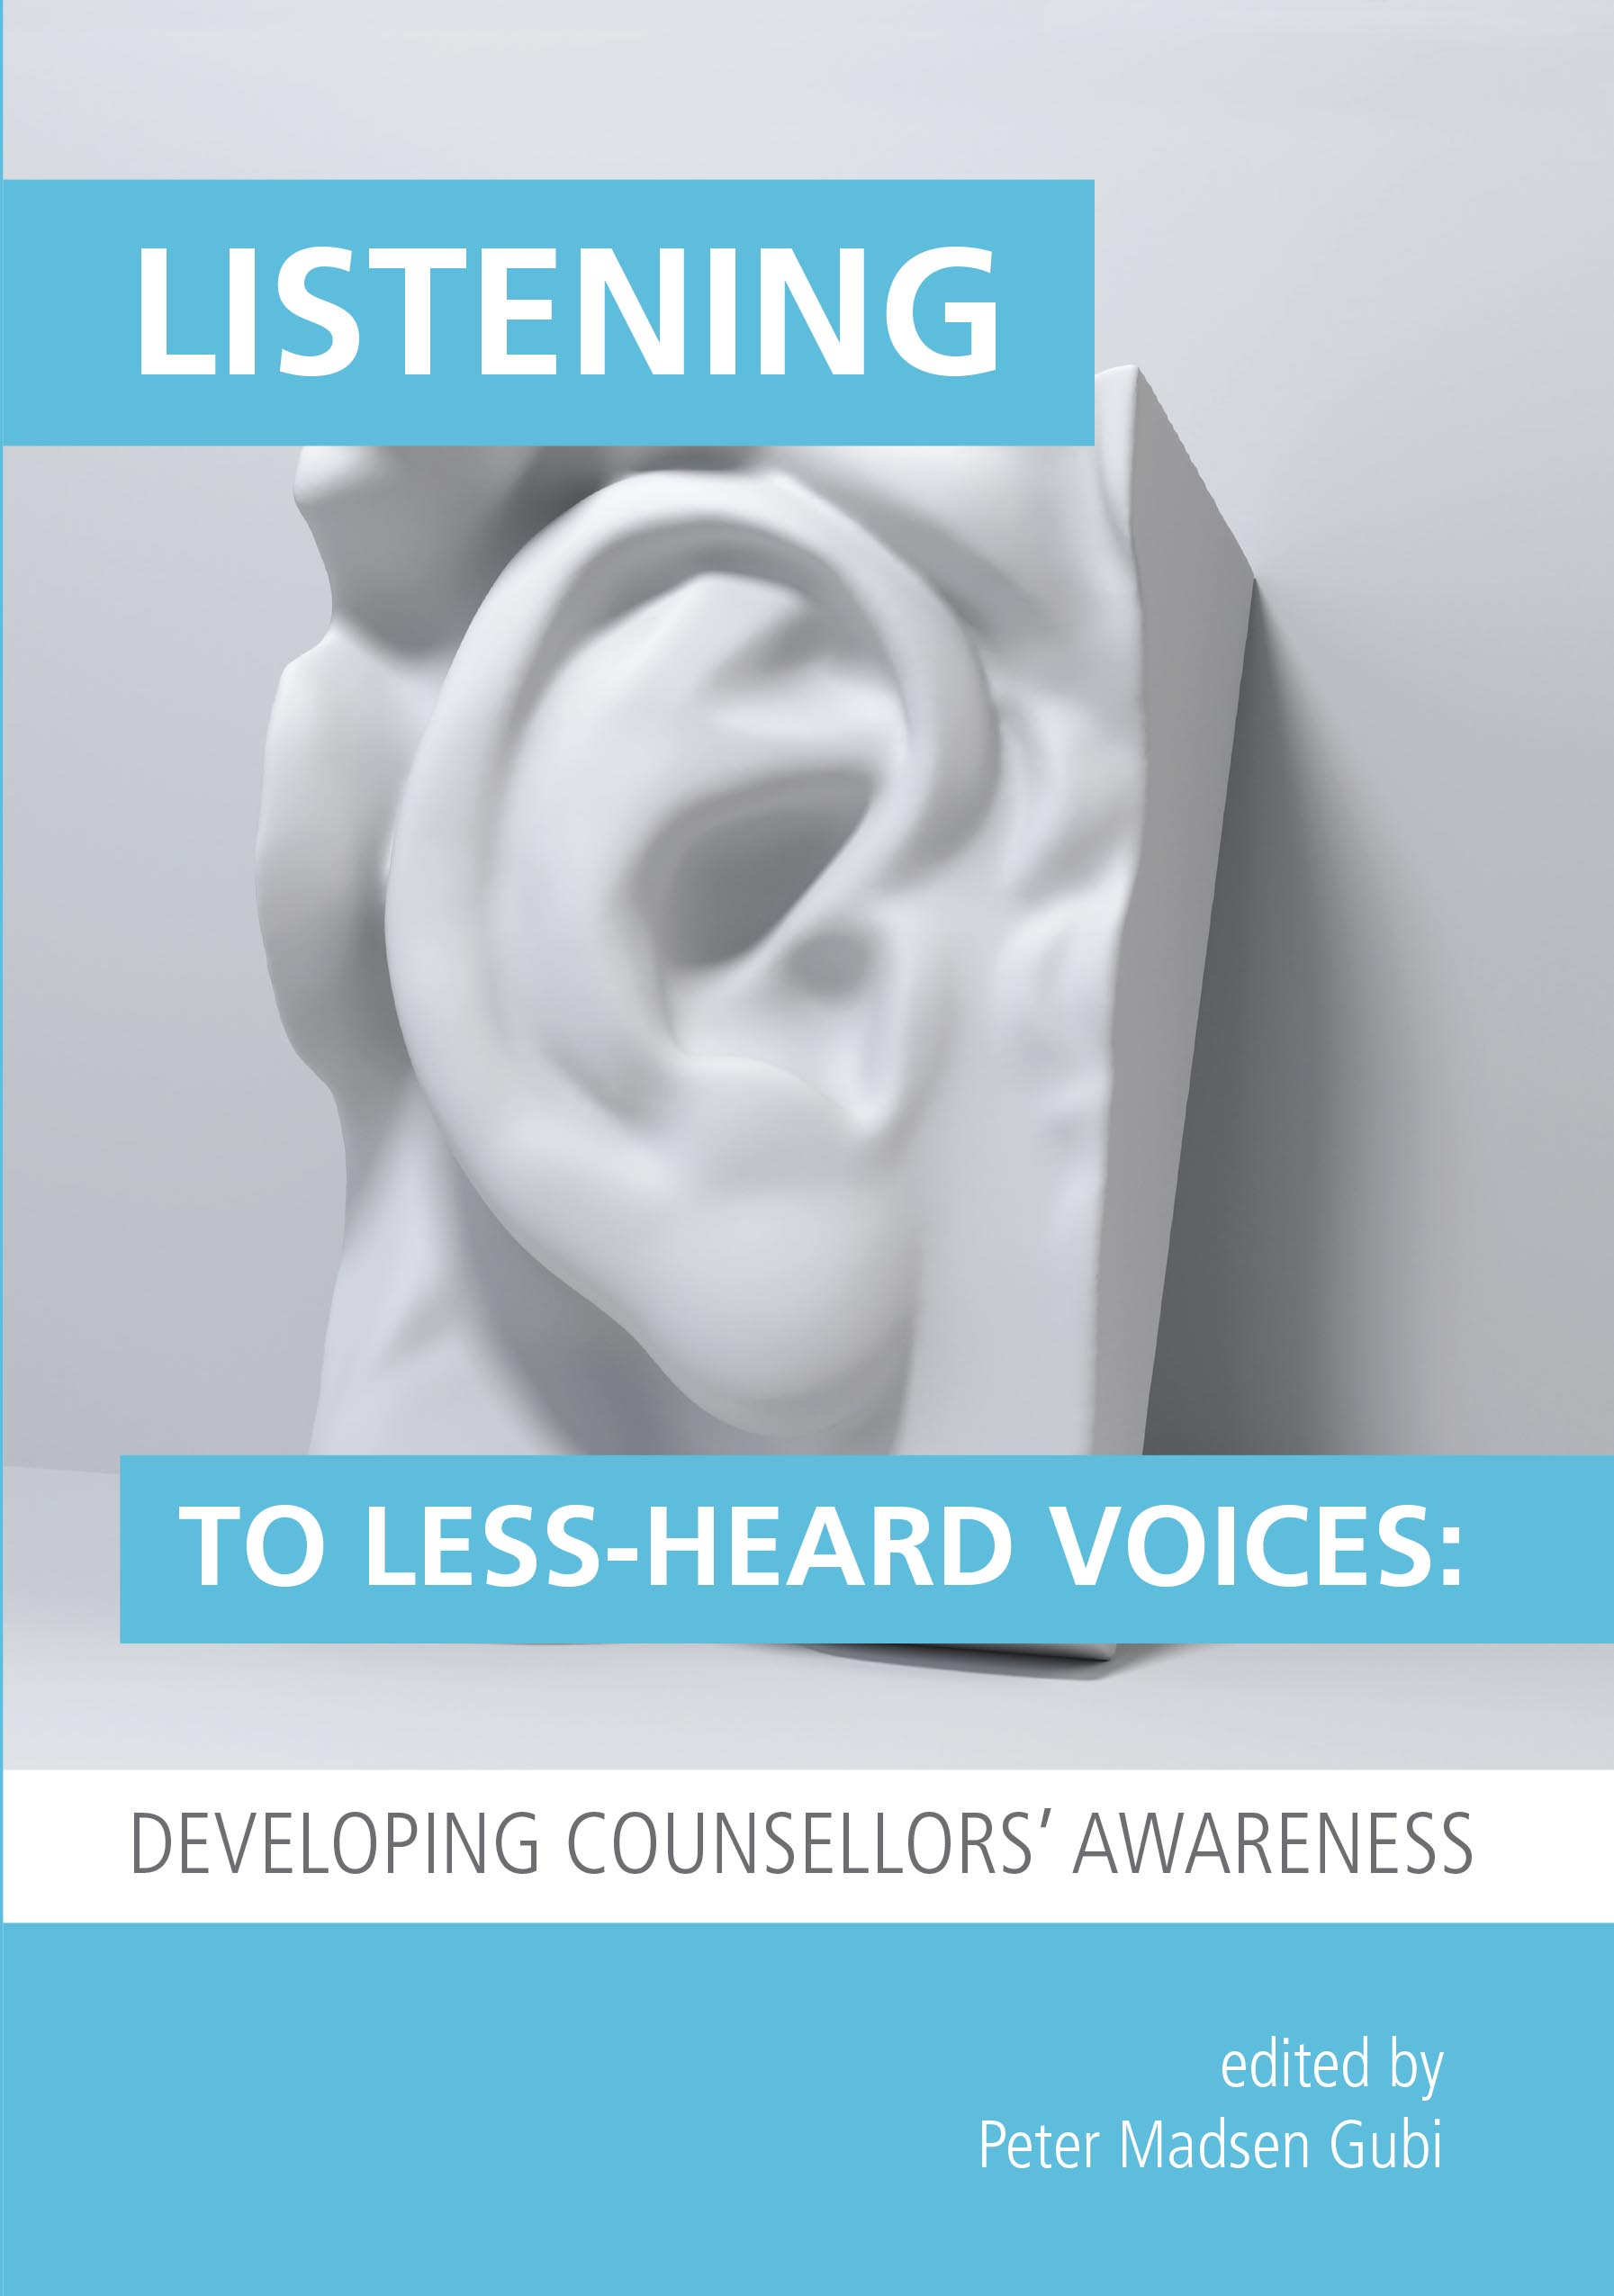 Listening to Less-Heard Voices: Developing Counsellors' Awareness